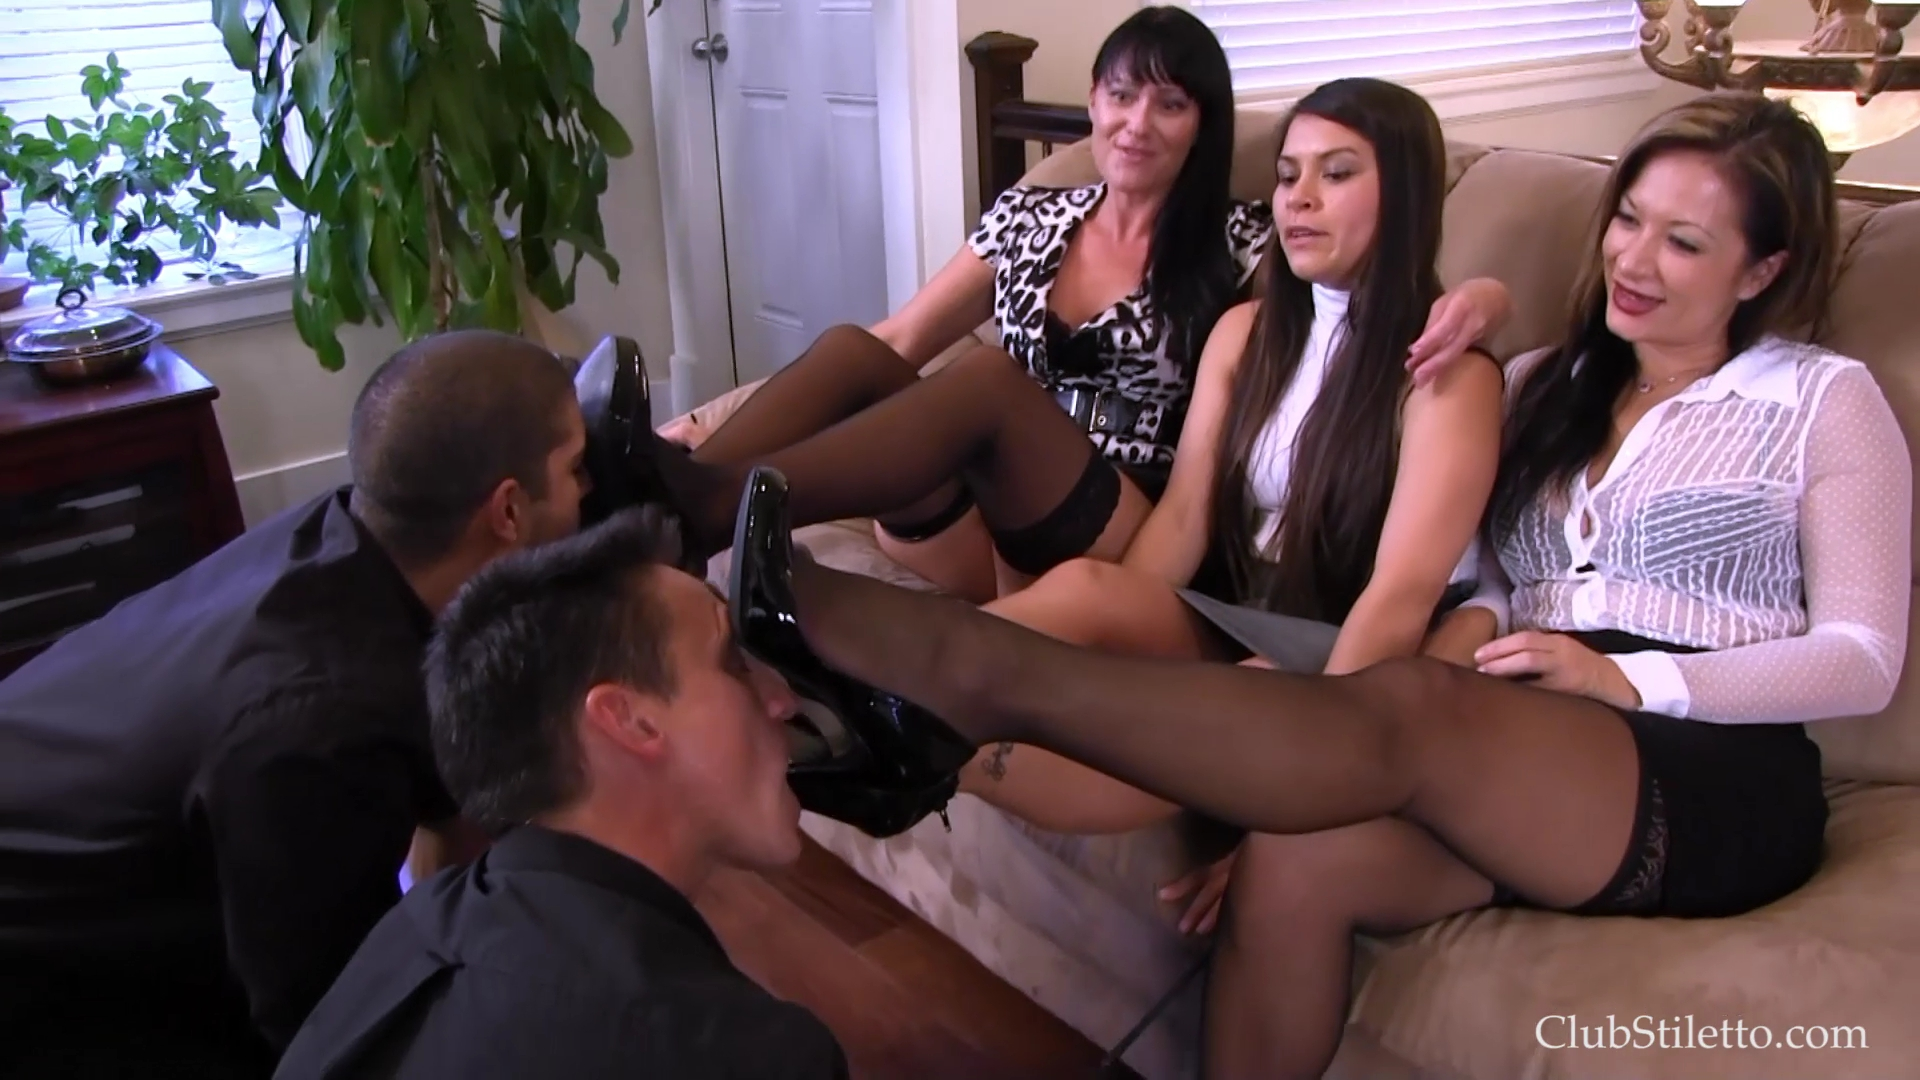 Hotties mature hard core